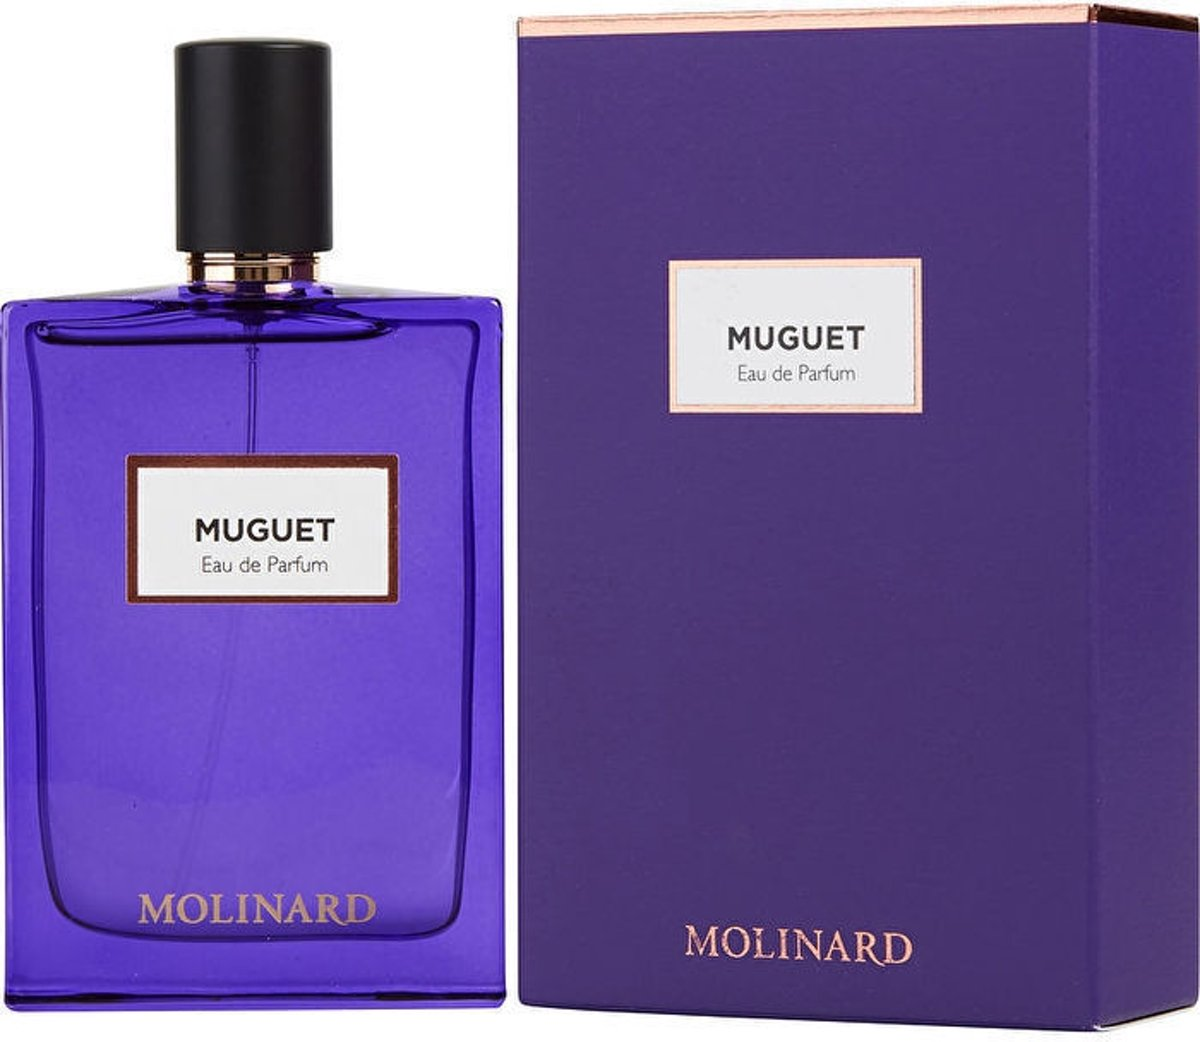 Molinard Muguet By Molinard Eau De Parfum Spray 75 ml - Fragrances For Everyone